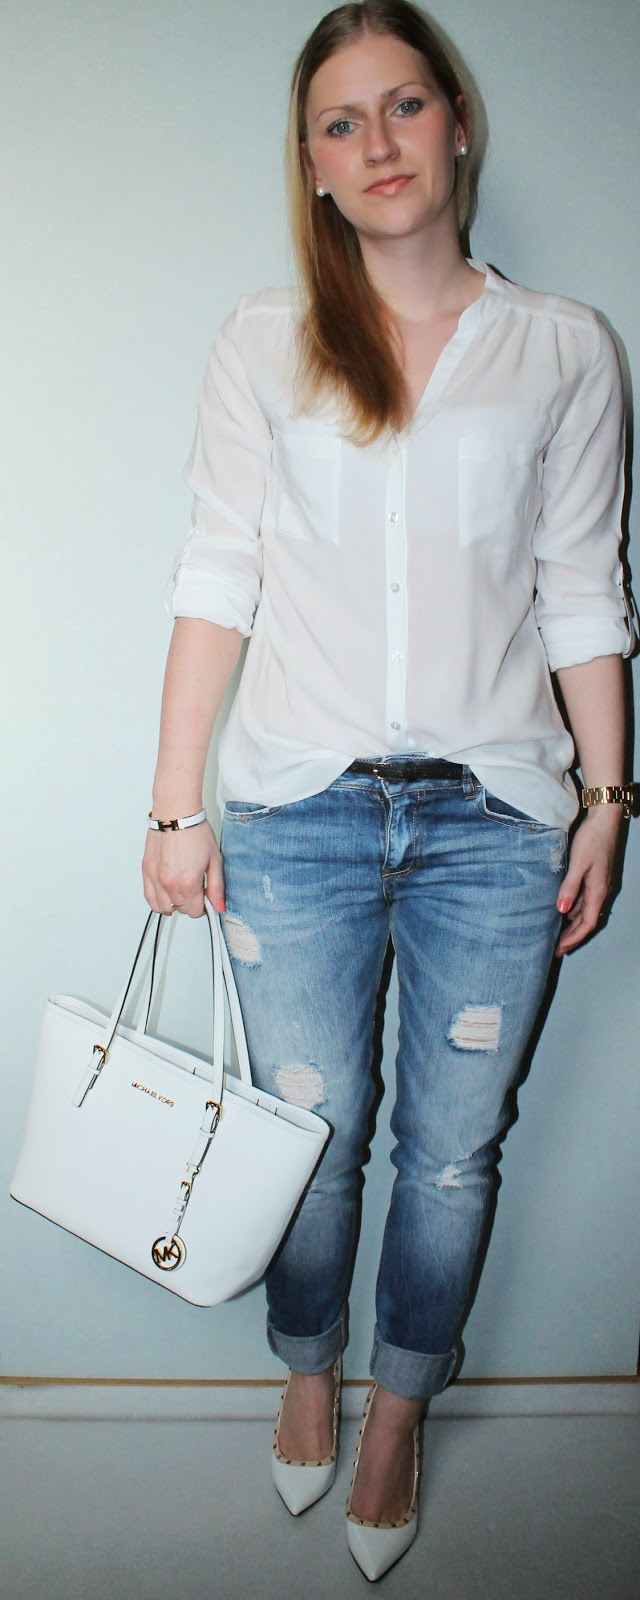 http://ani-hearts.blogspot.de/2014/04/color-crush-white.html